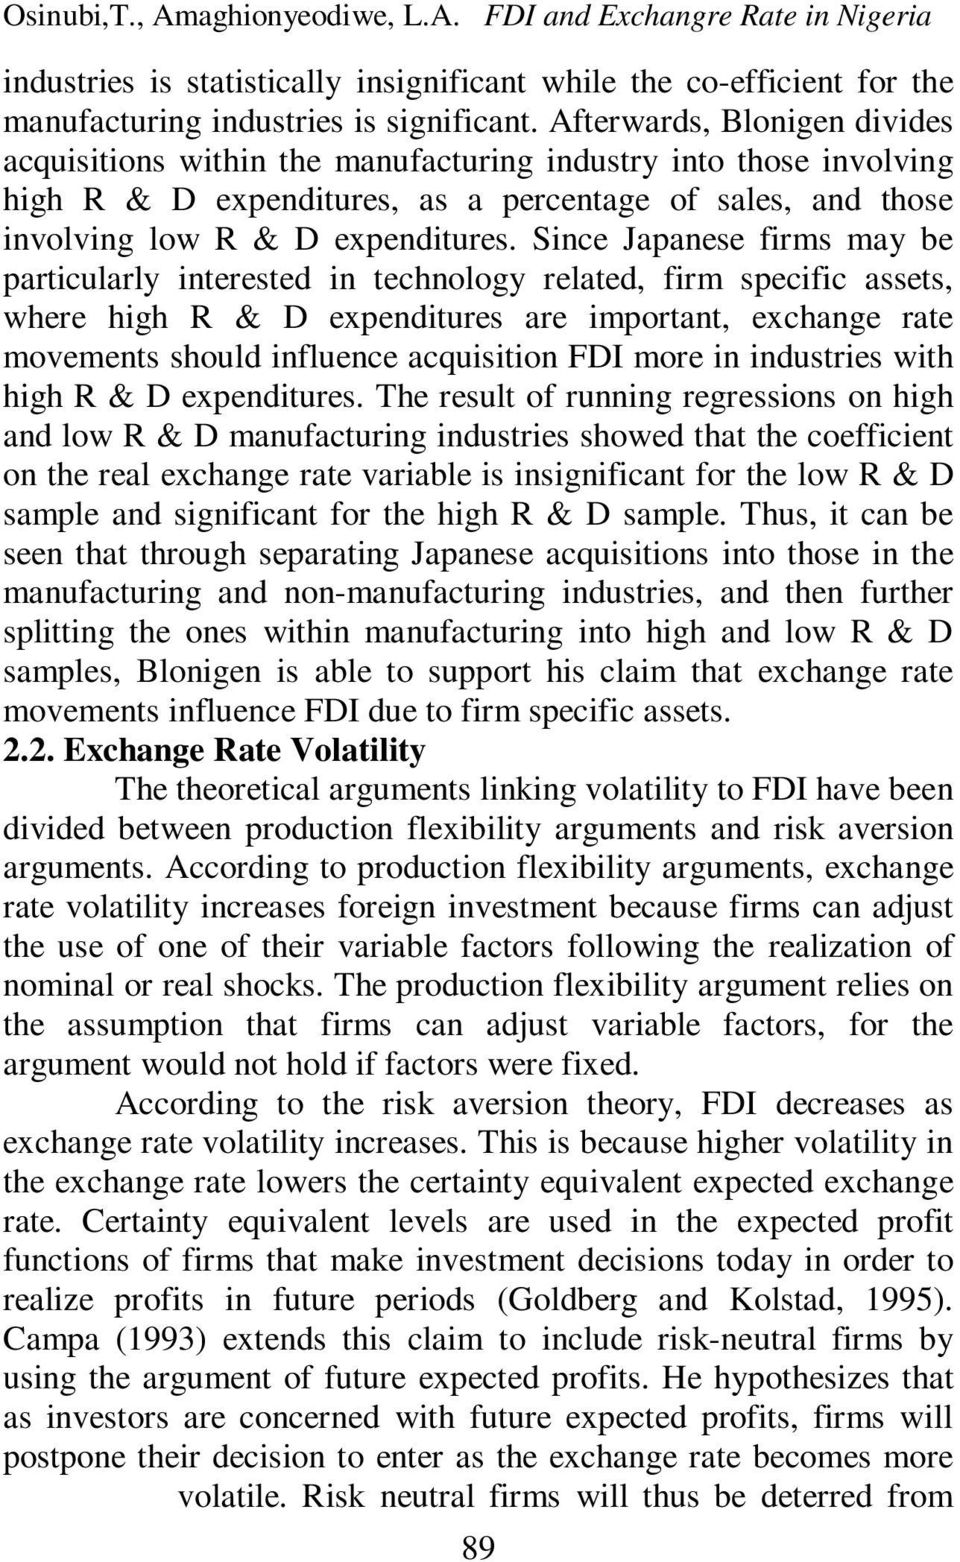 Since Japanese firms may be particularly interested in technology related, firm specific assets, where high R & D expenditures are important, exchange rate movements should influence acquisition FDI